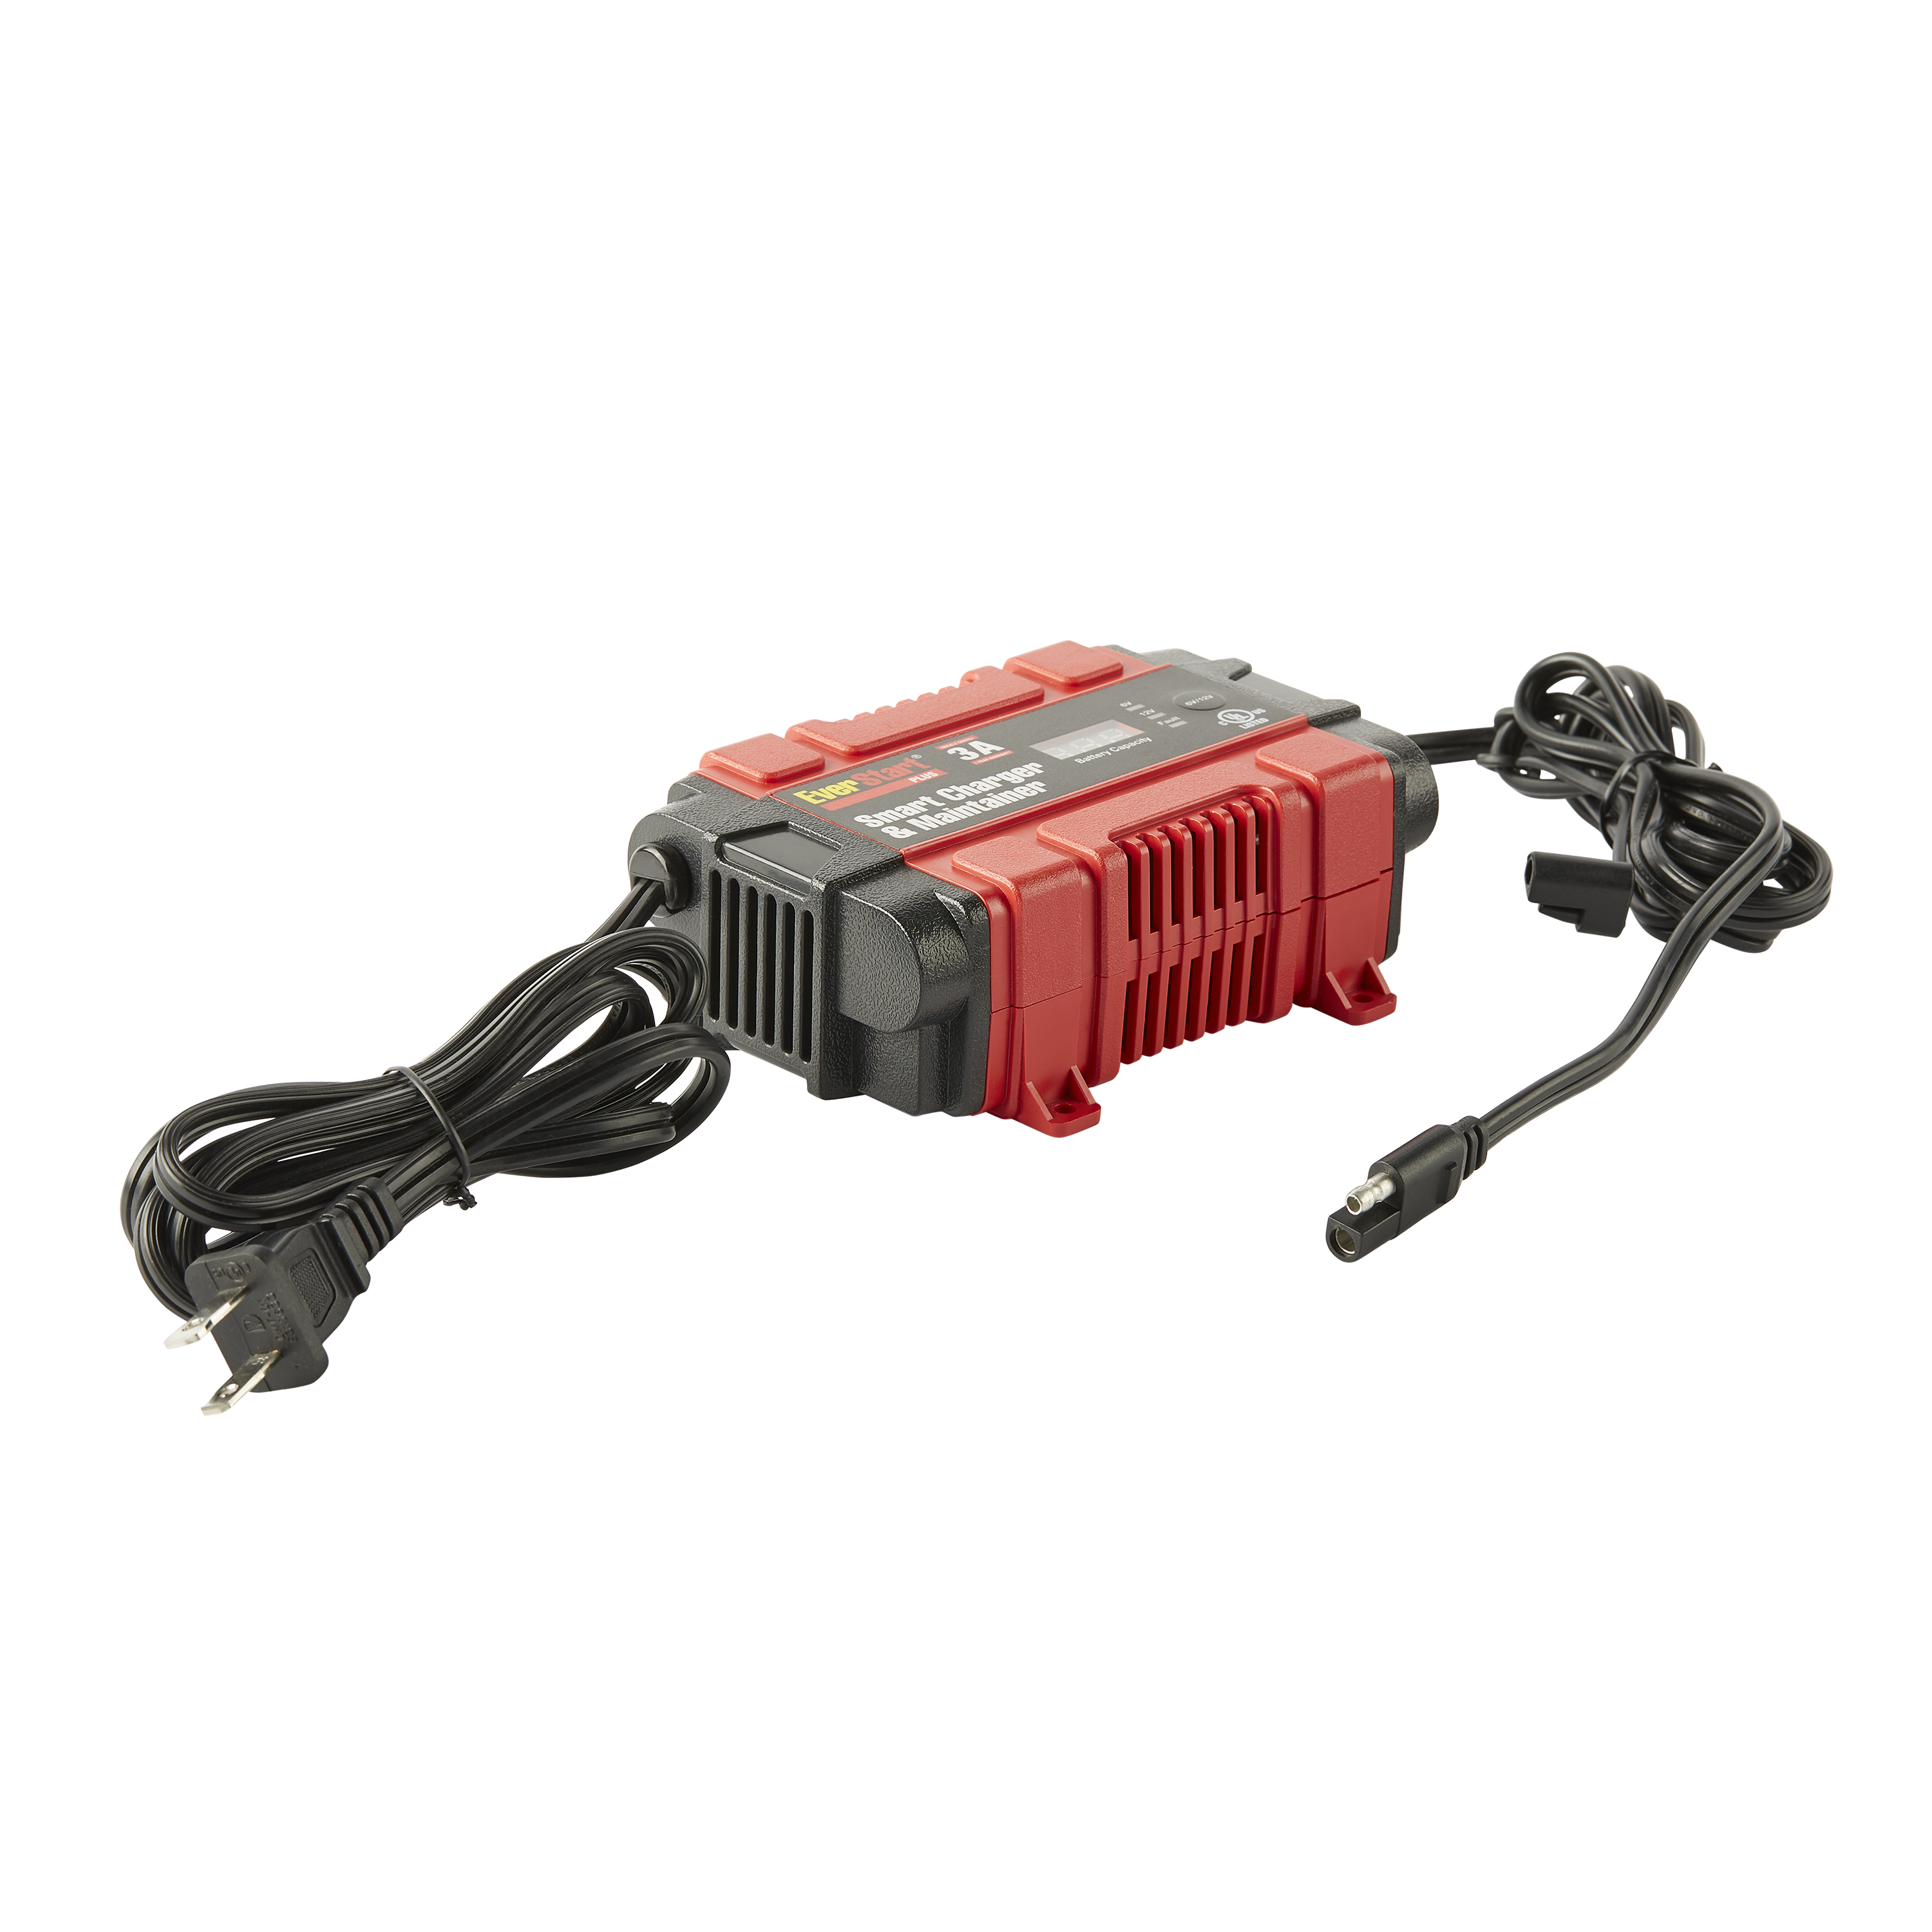 Cxc 7100 Battery Charger Wiring Diagram Trusted Wiring Diagram Wiring  Diagram Symbols Schumacher Psw Wiring Diagram